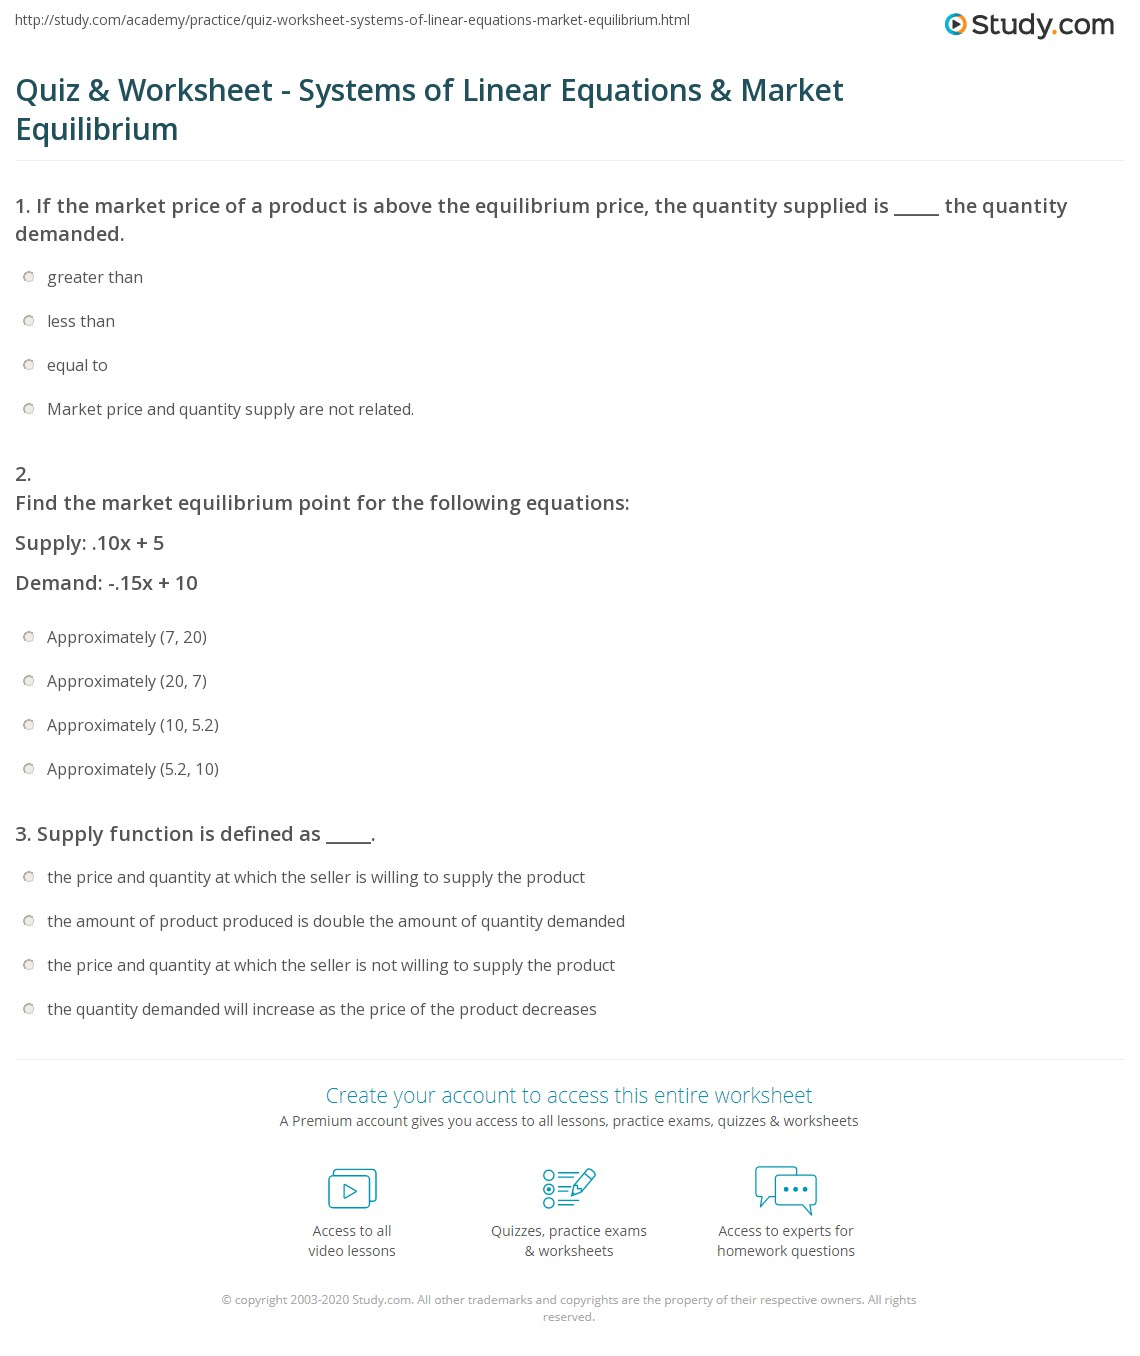 Quiz & Worksheet - Systems of Linear Equations & Market ...